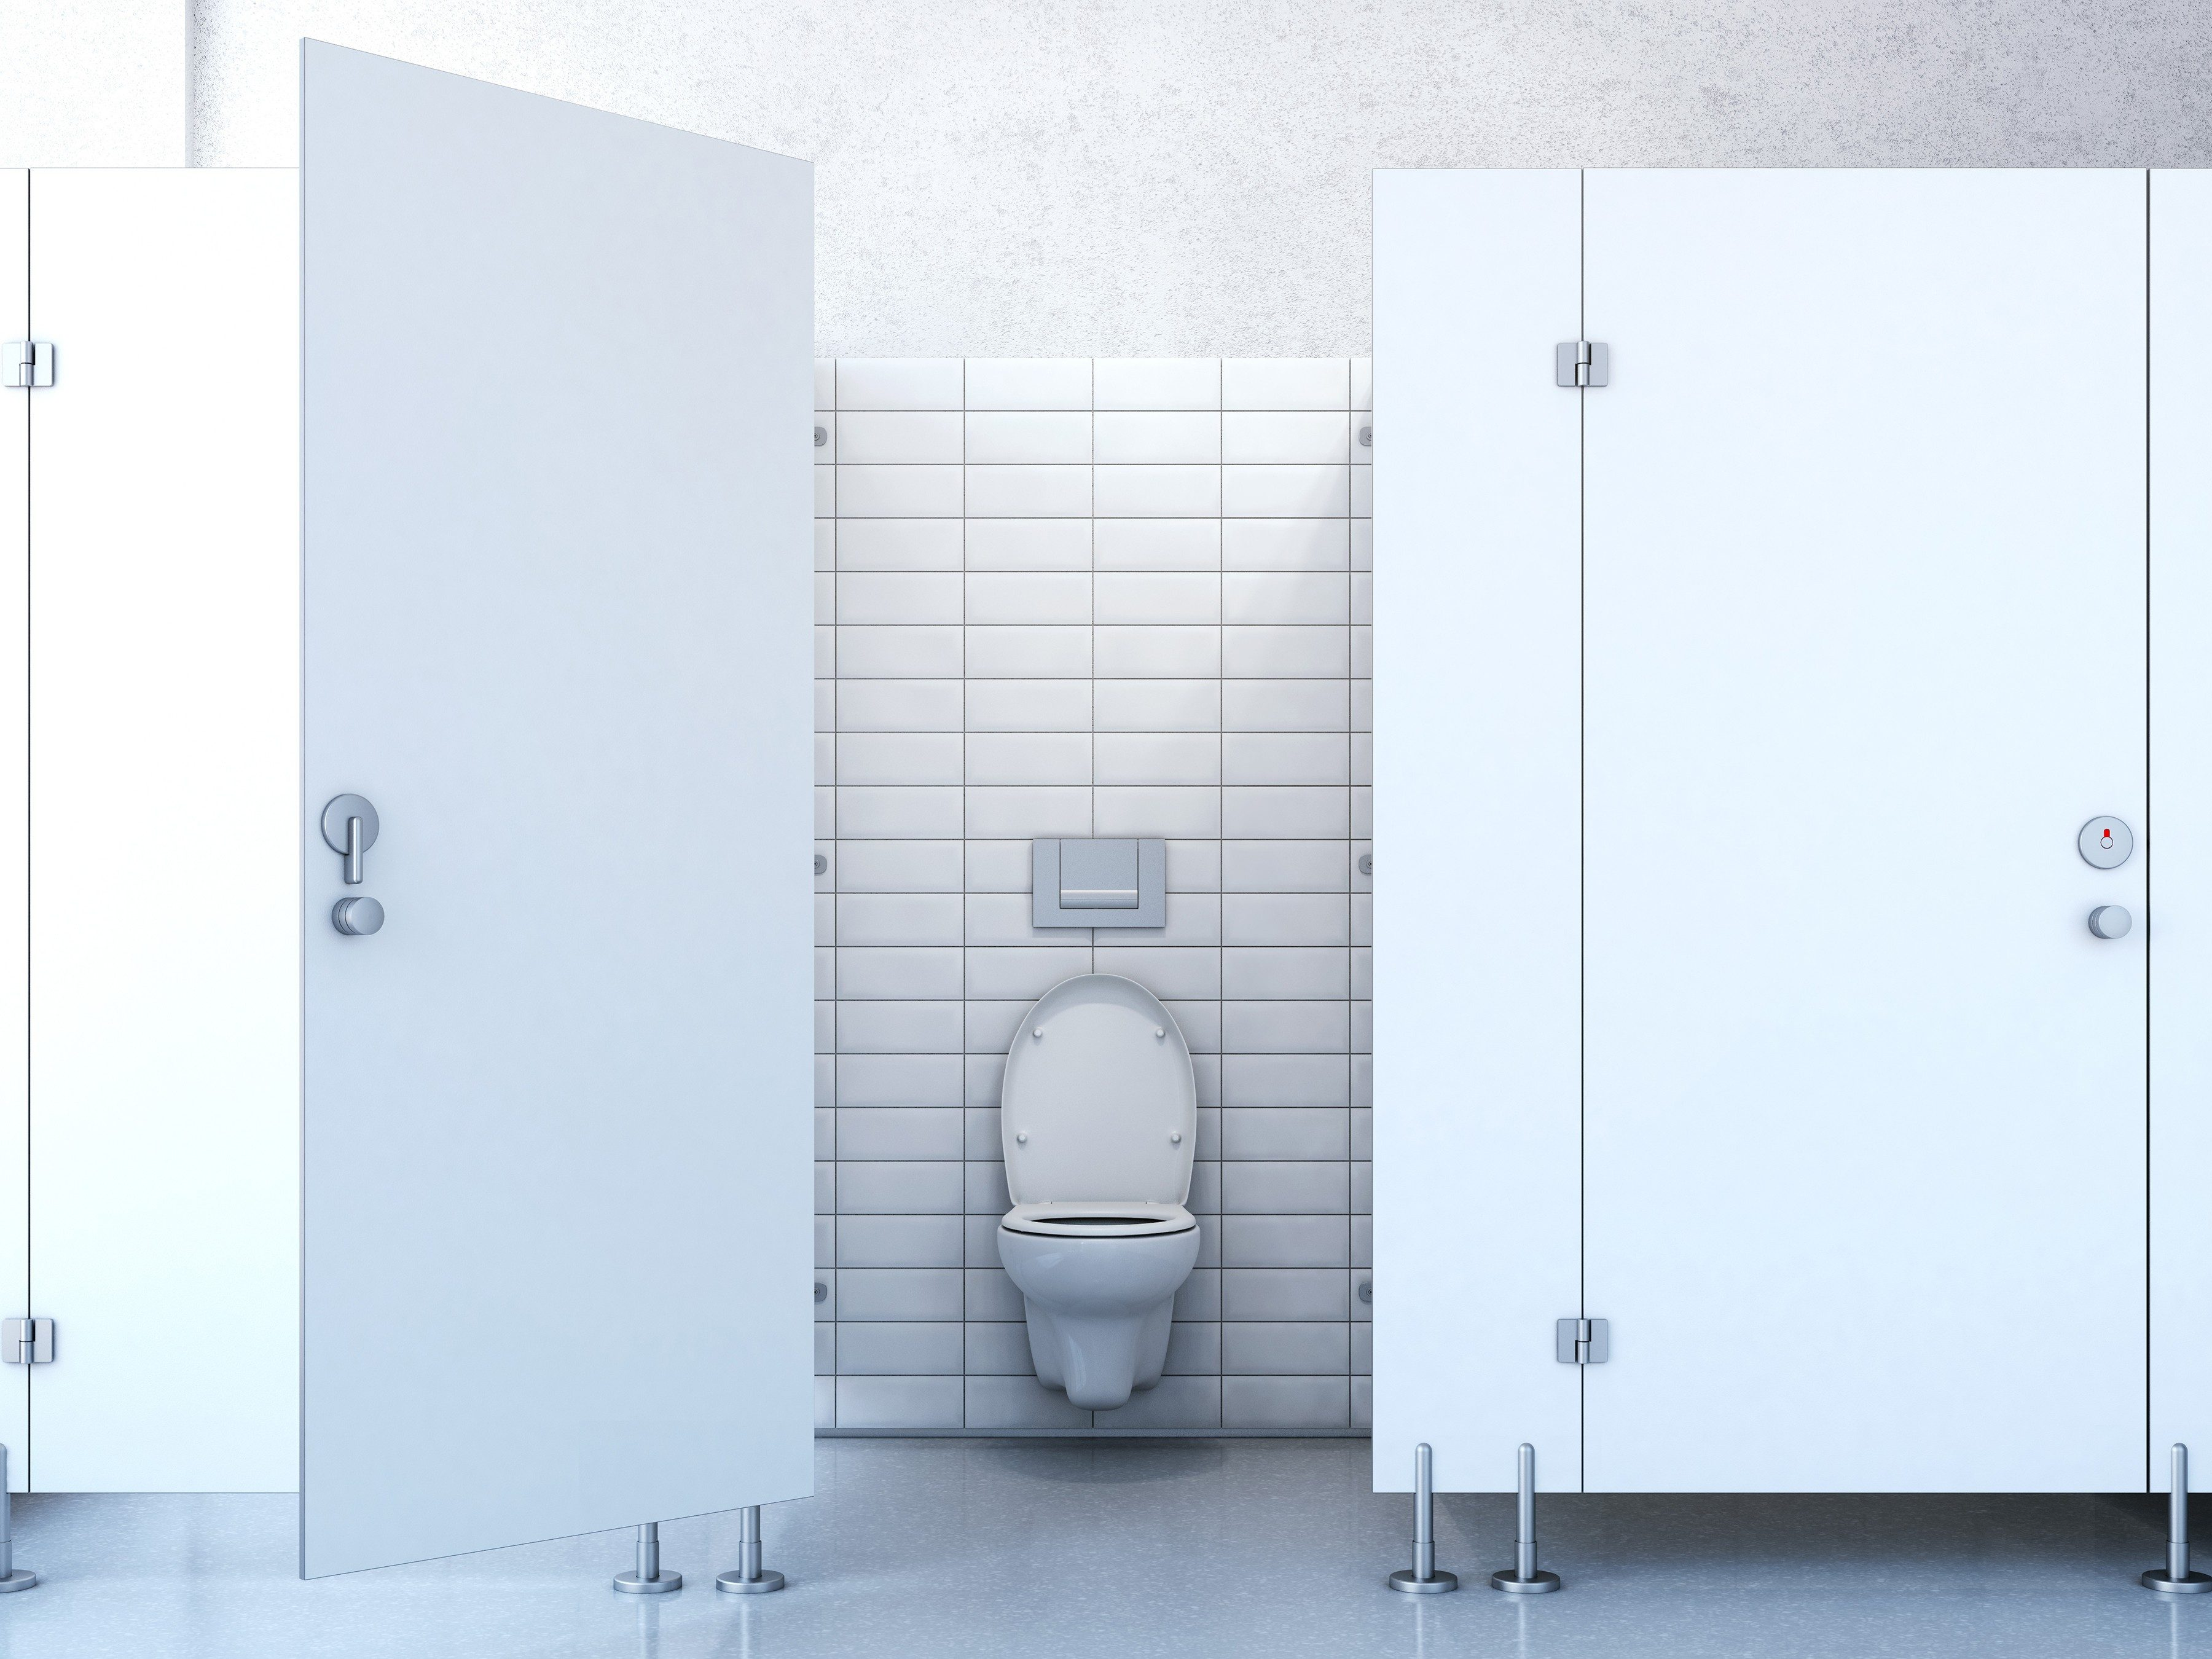 7. Toilets aren't the most dangerous thing in public bathroom.